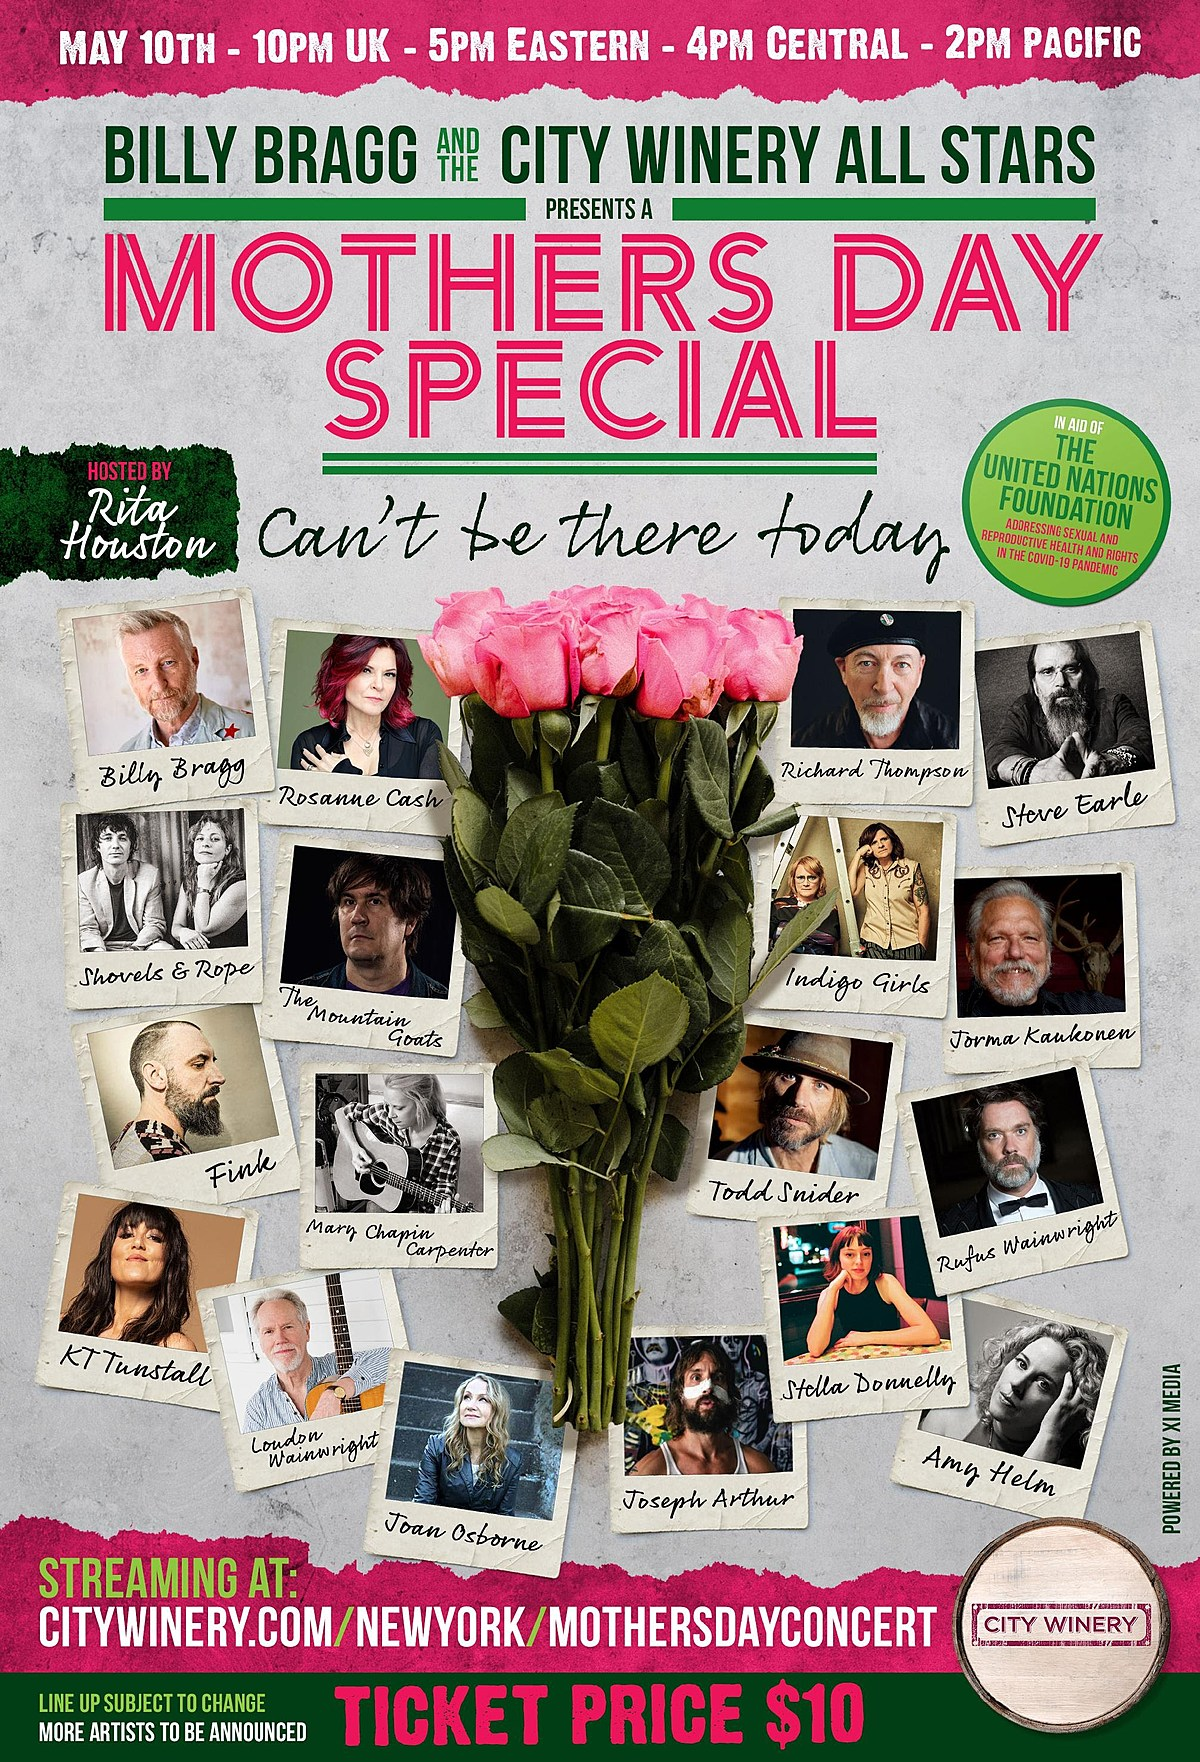 Billy Bragg, Rufus Wainwright, Mountain Goats, Rosanne Cash more playing Mother's Day livestream benefit